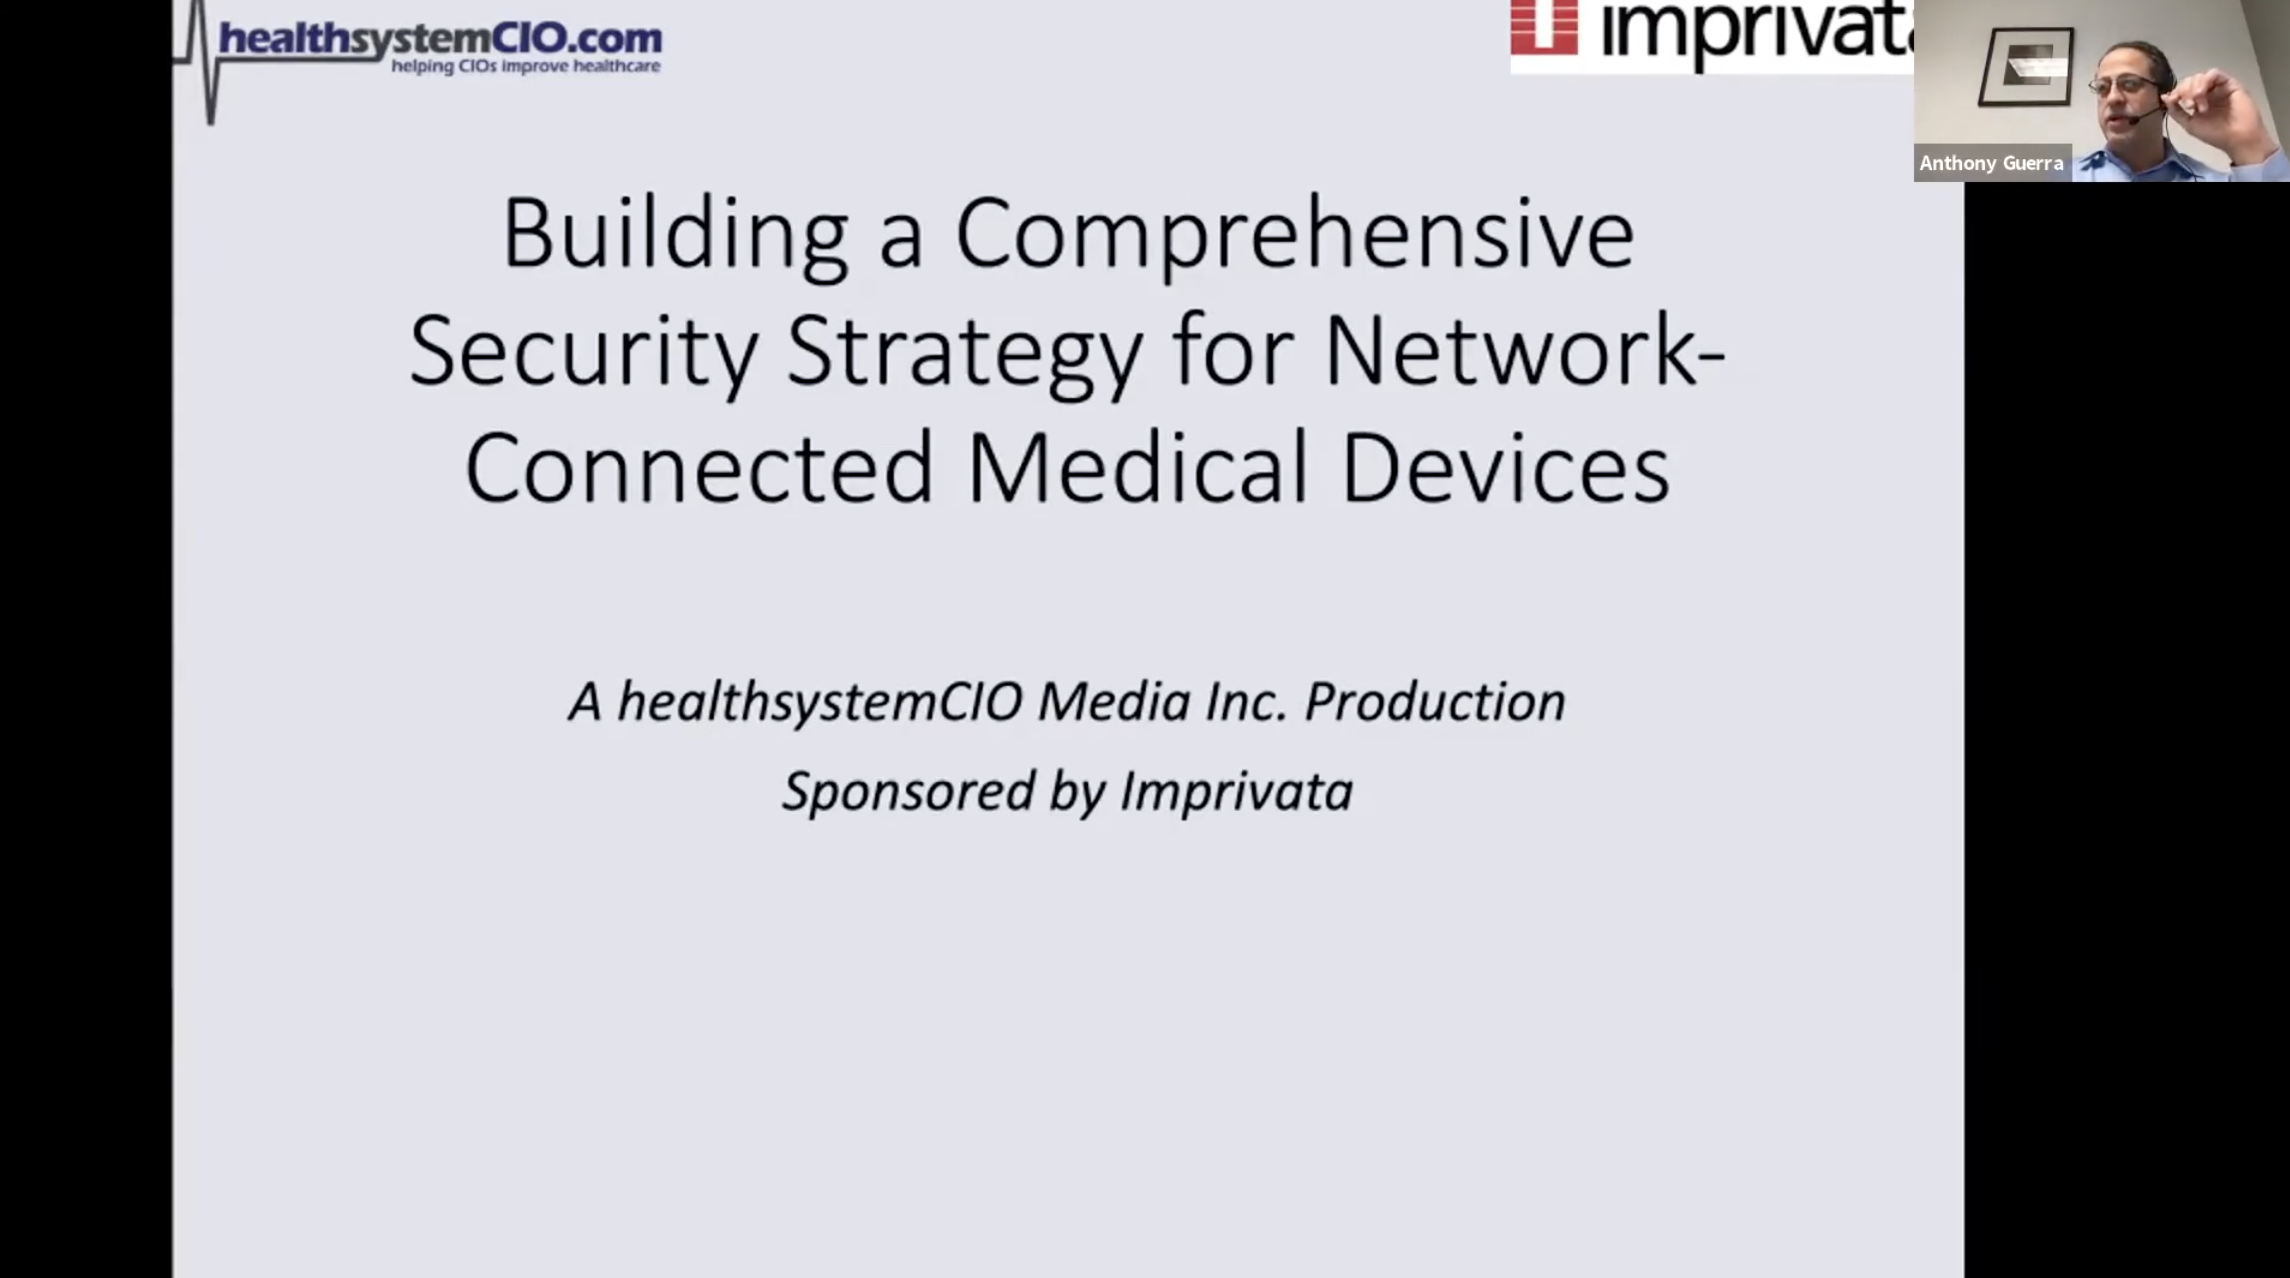 Building a comprehensive security strategy for network-connected medical devices